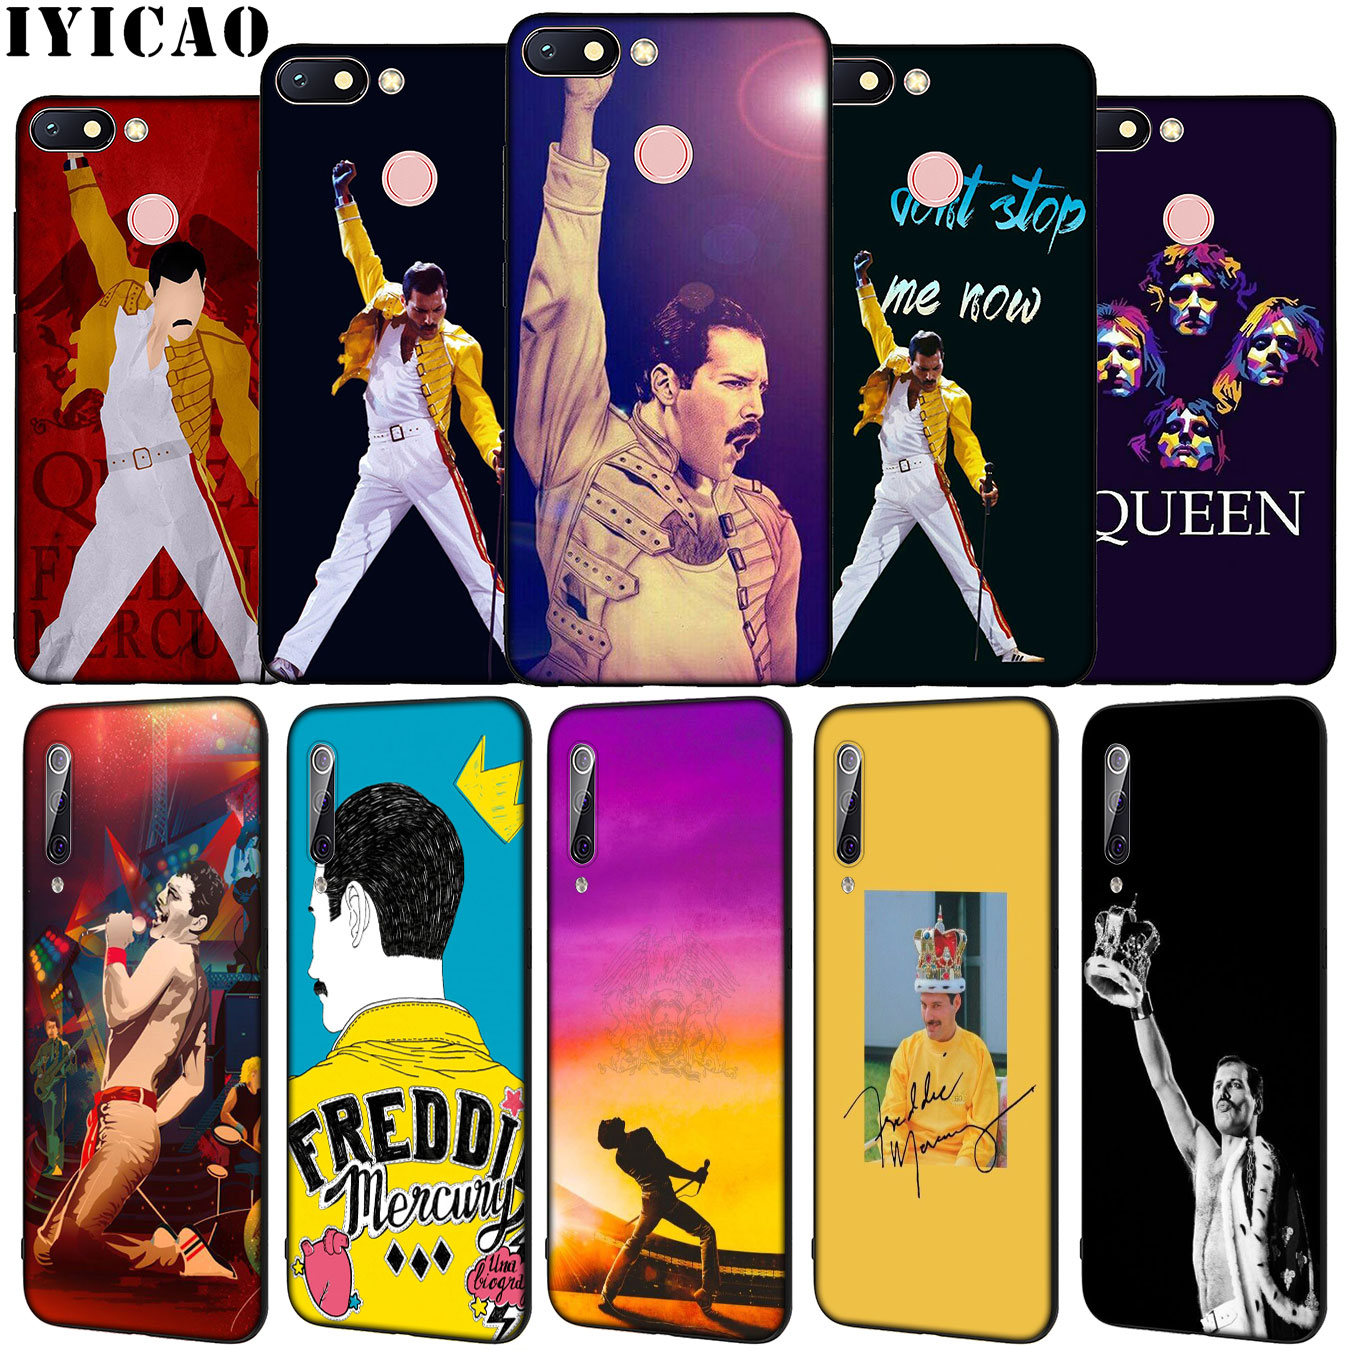 IYICAO Queen Freddie Mercury Hot Soft Silicone Phone Case For Xiaomi Redmi 8A 7A 6A 5A K20 S2 4A 4X Note 8 7 6 Pro 5 Plus Cover